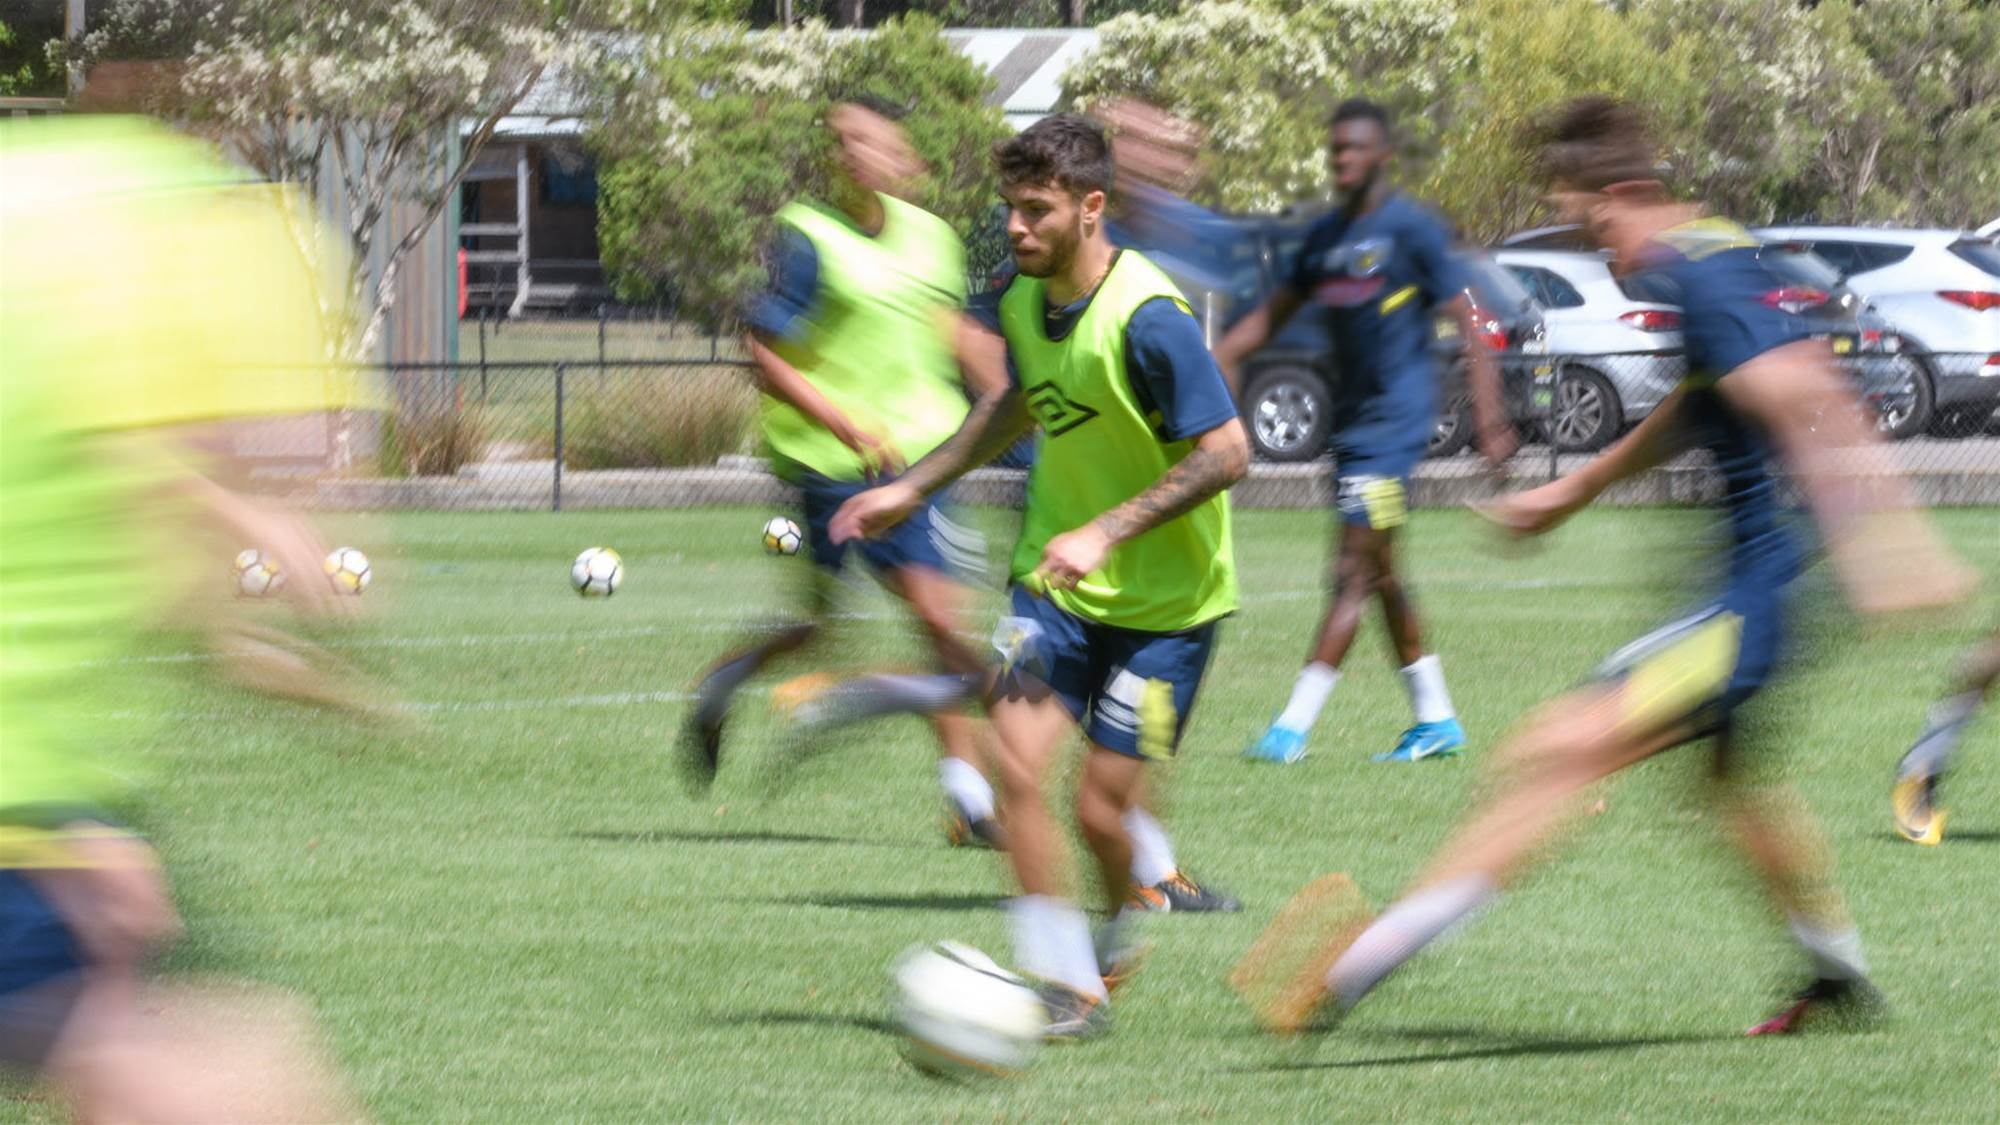 De Silva's route back to the Roos